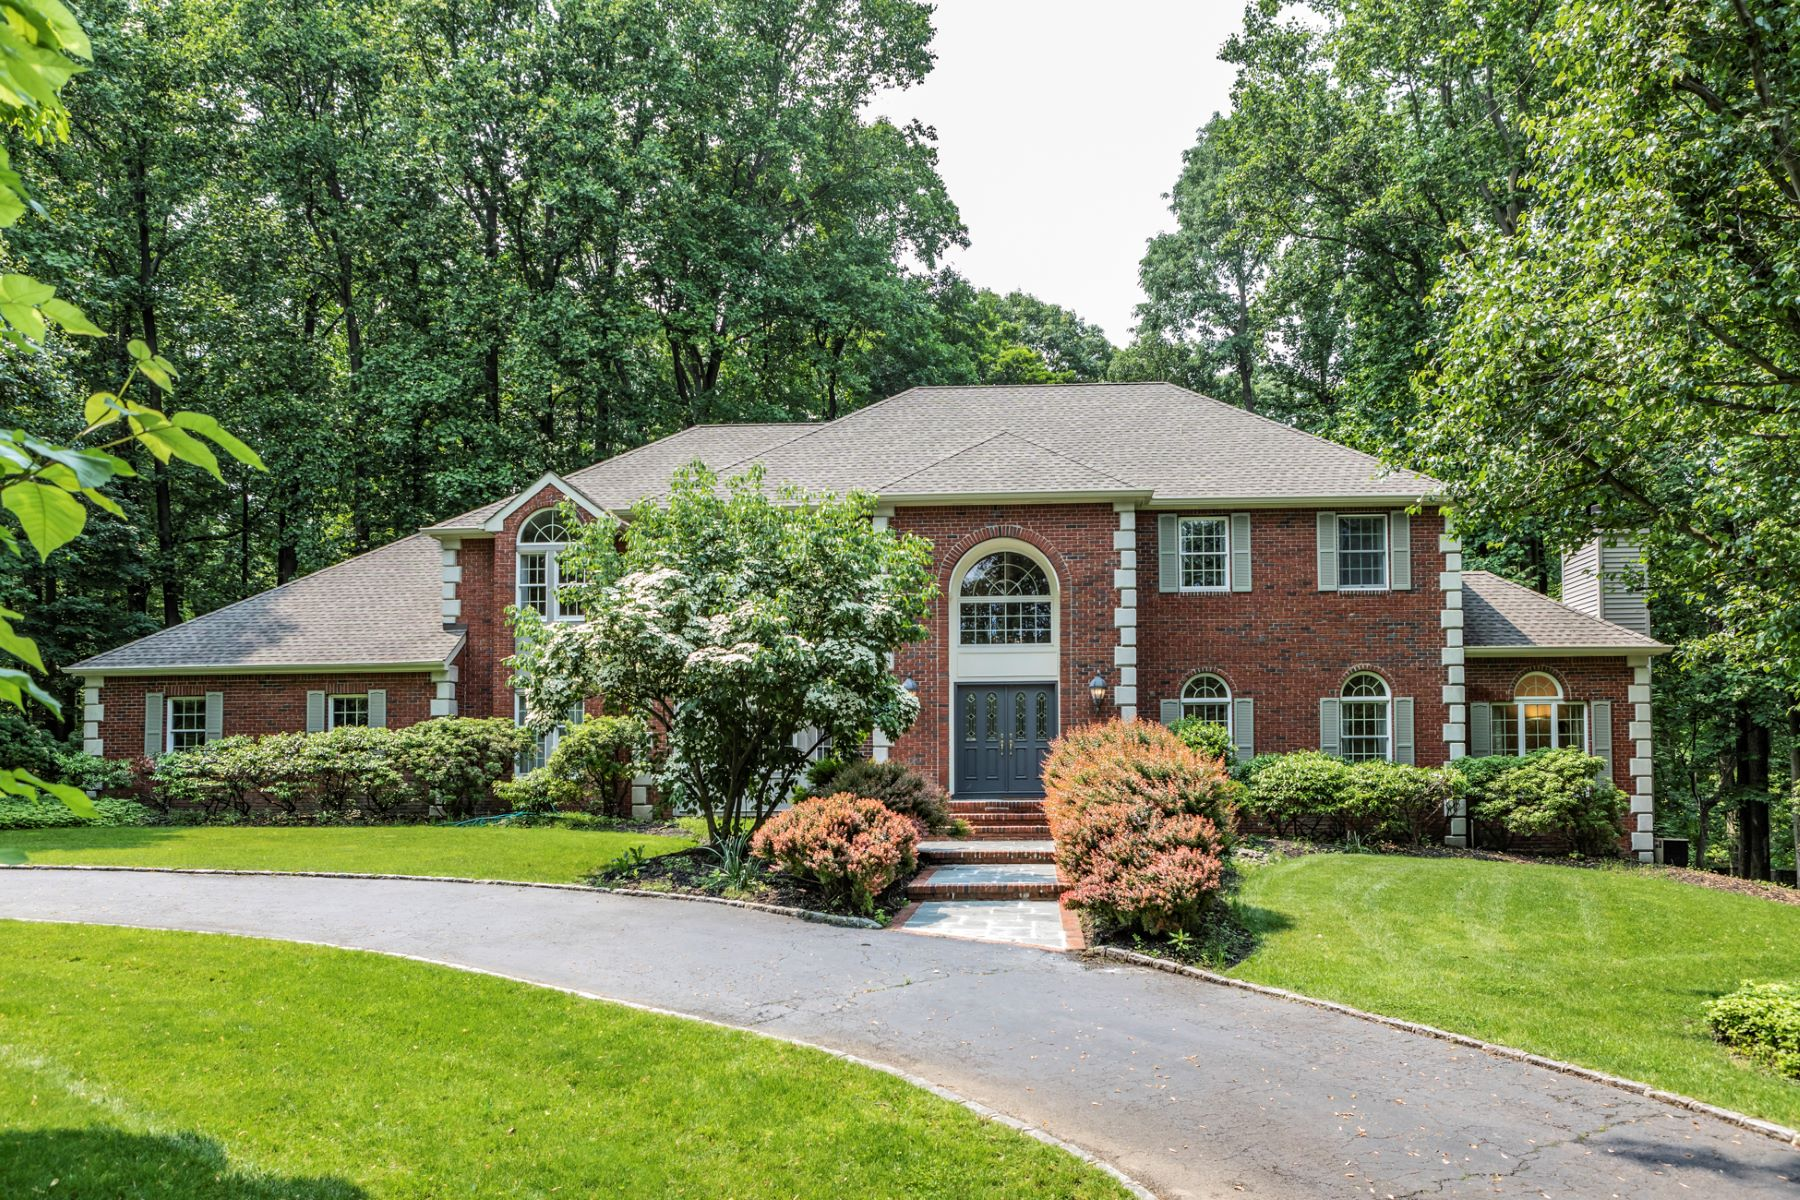 single family homes for Sale at Fine Quality in This Princeton Ridge Colonial 165 Arrenton Road, Princeton, New Jersey 08540 United States